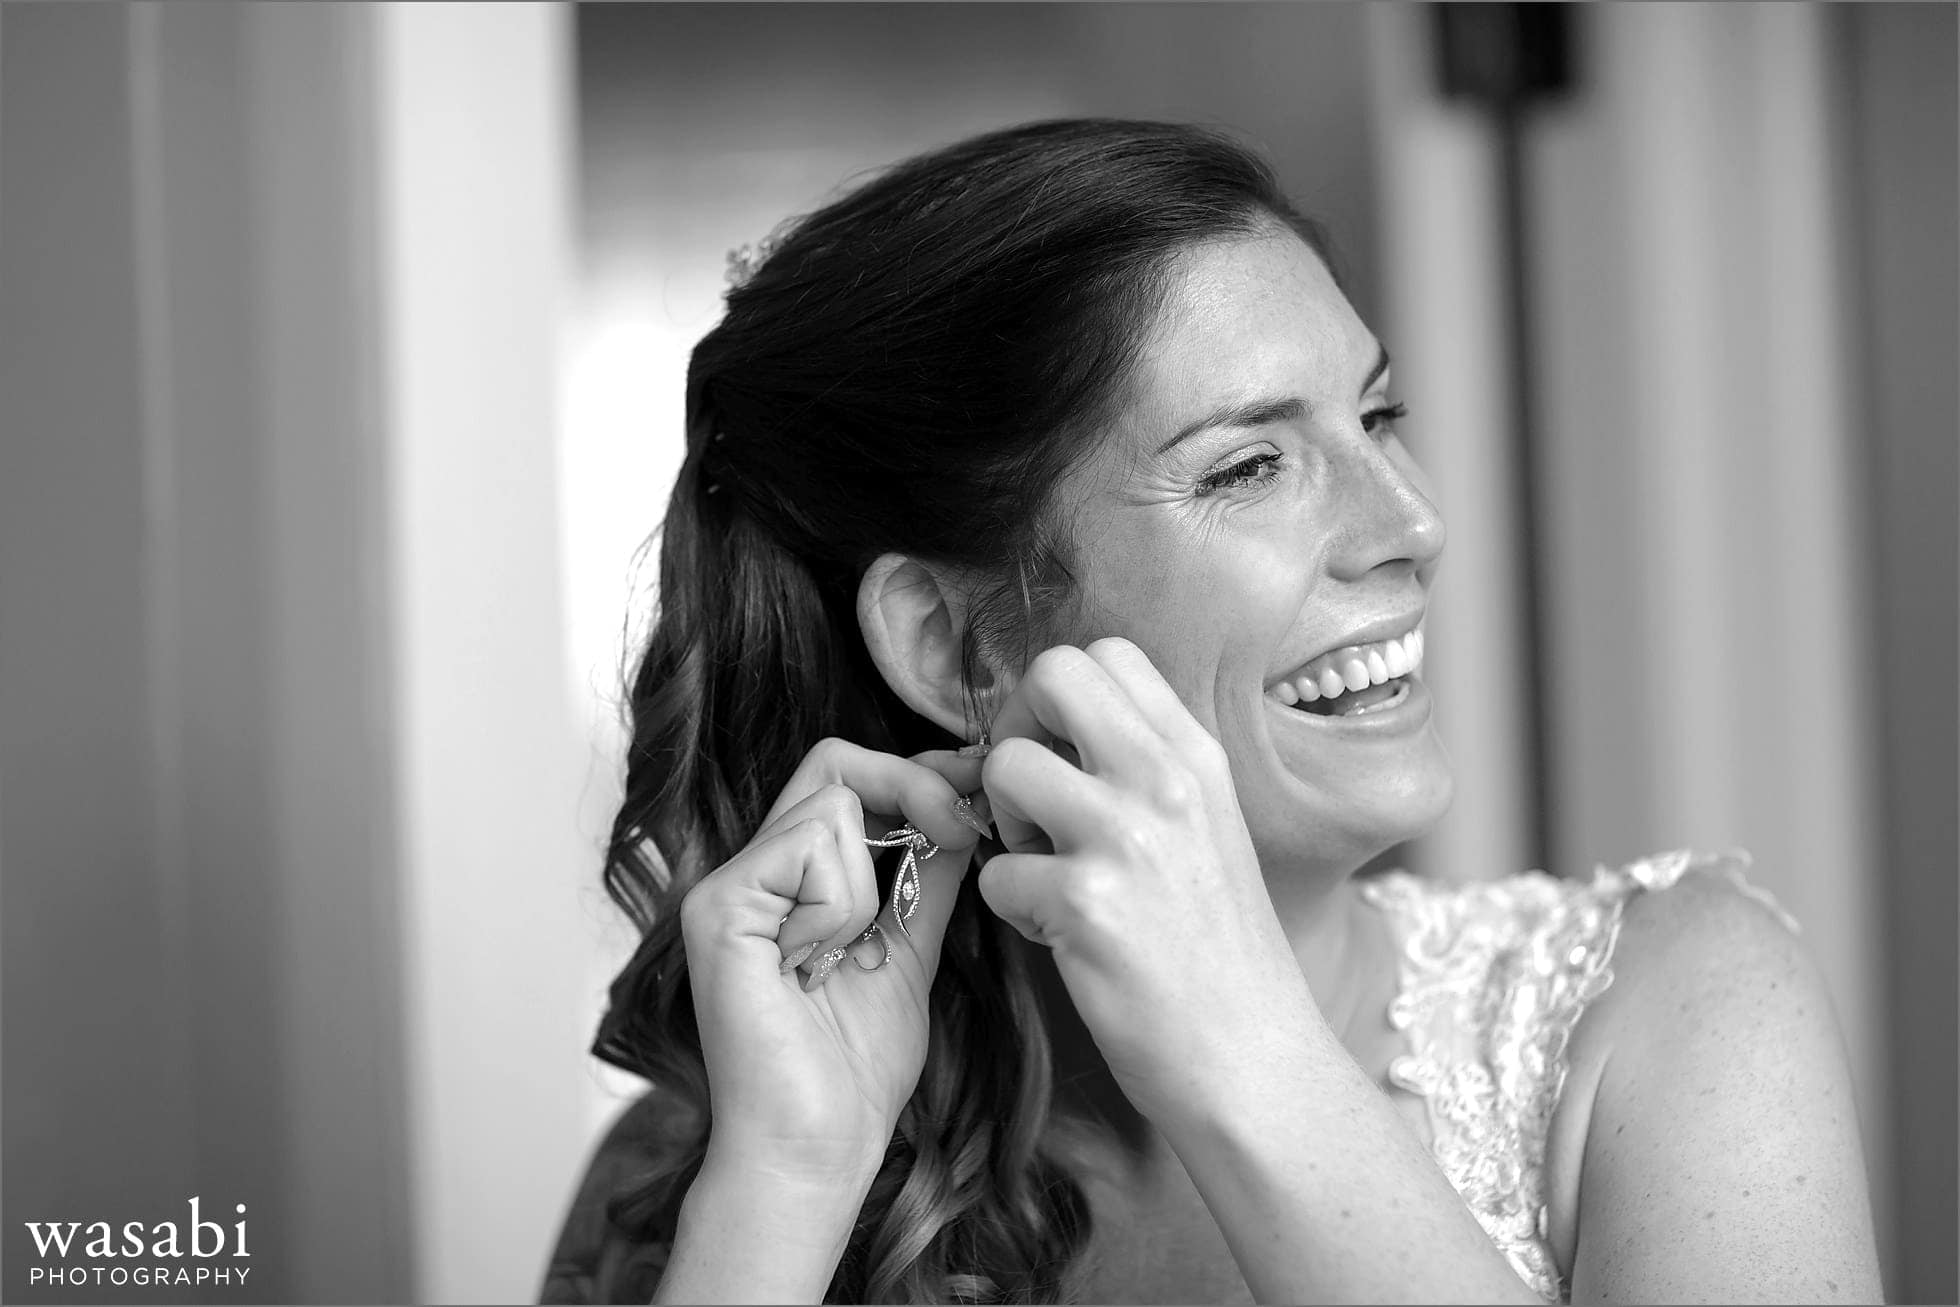 bride puts on earring while getting ready for her wedding